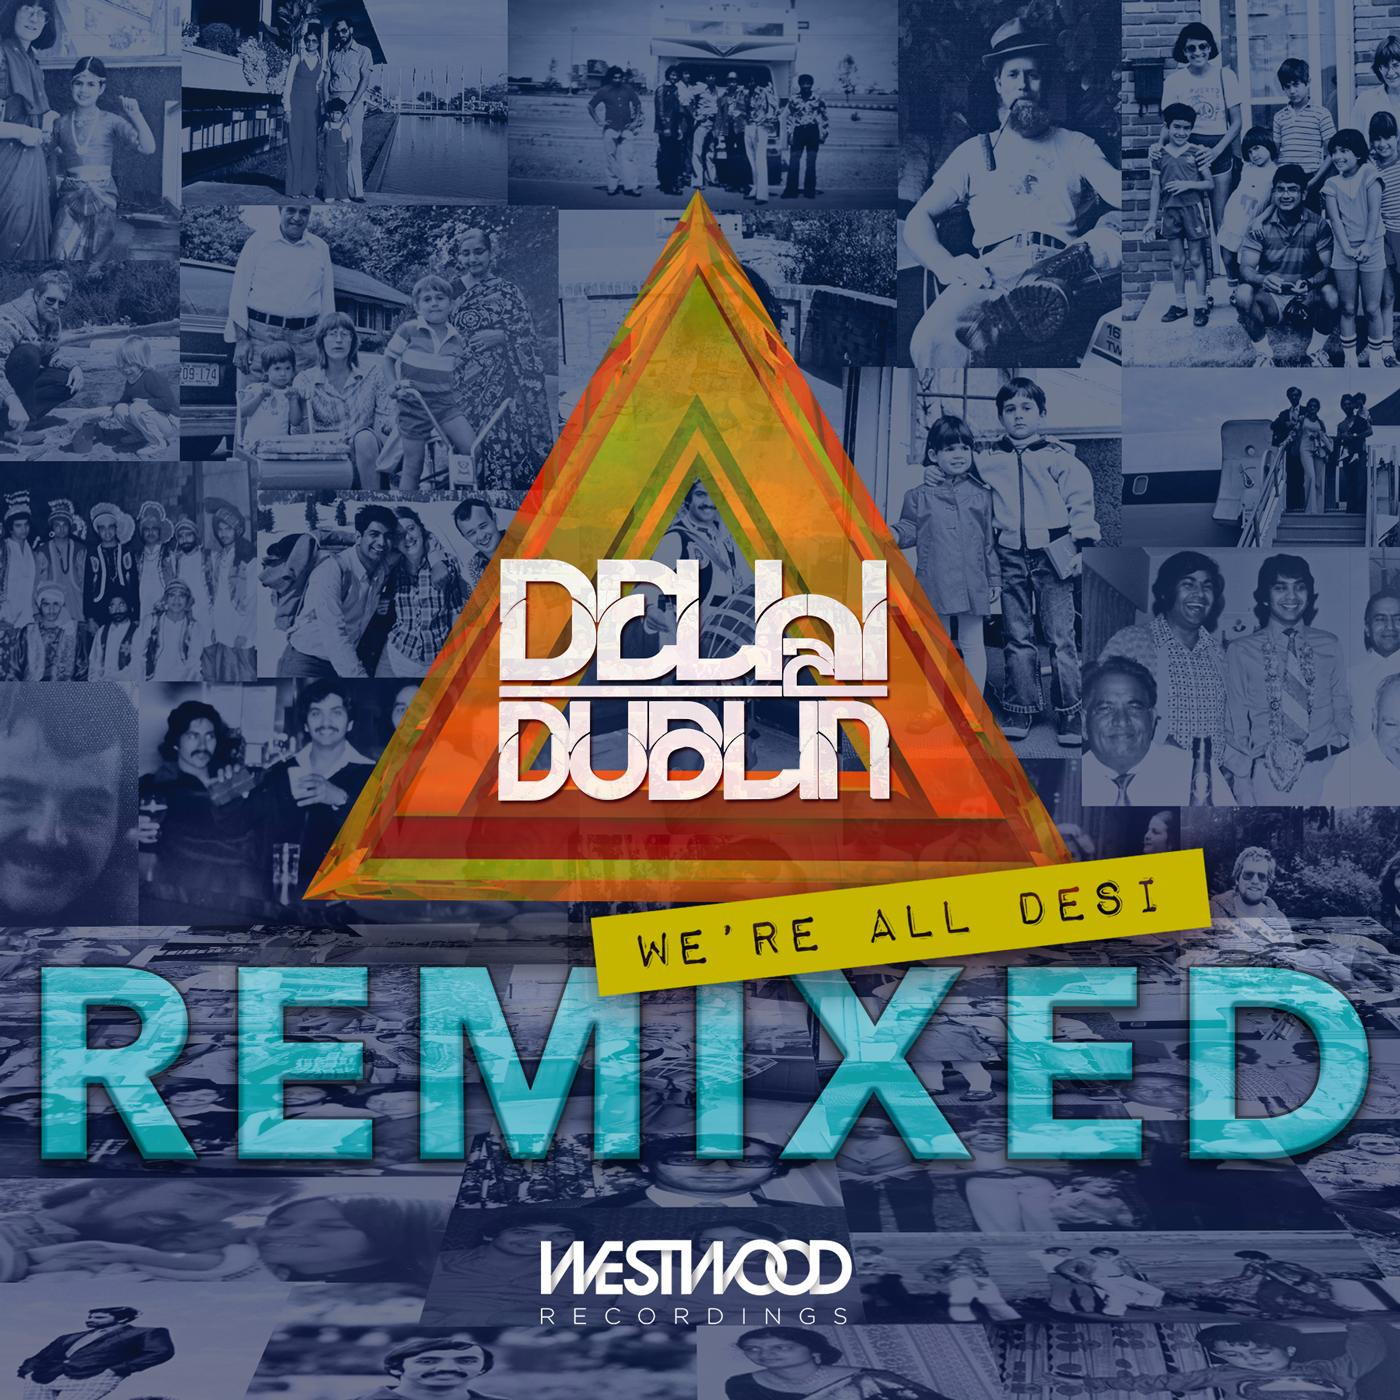 Delhi 2 Dublin - We're All Desi (Remixed)